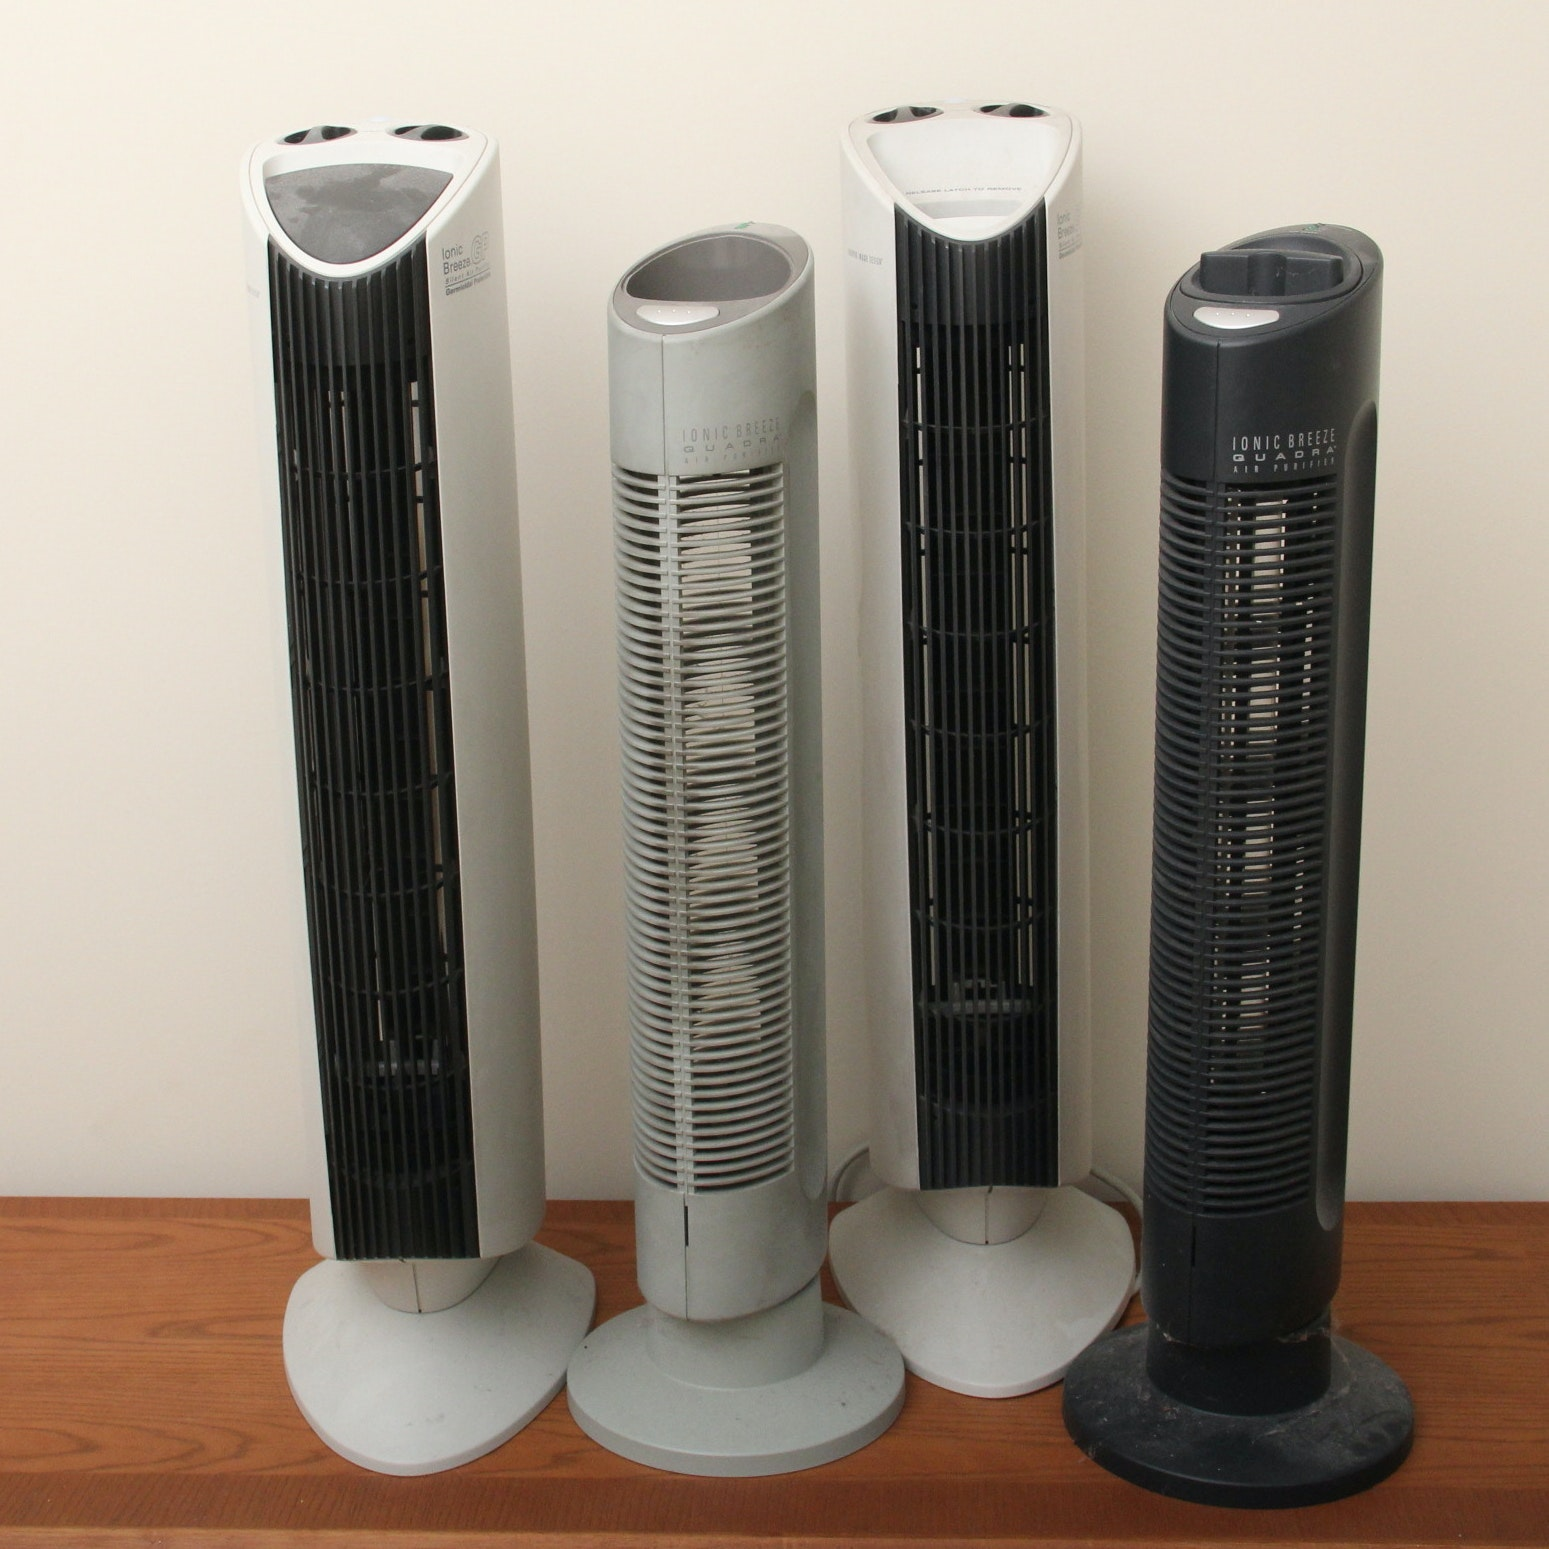 Set of Four Upright Air Cleaners